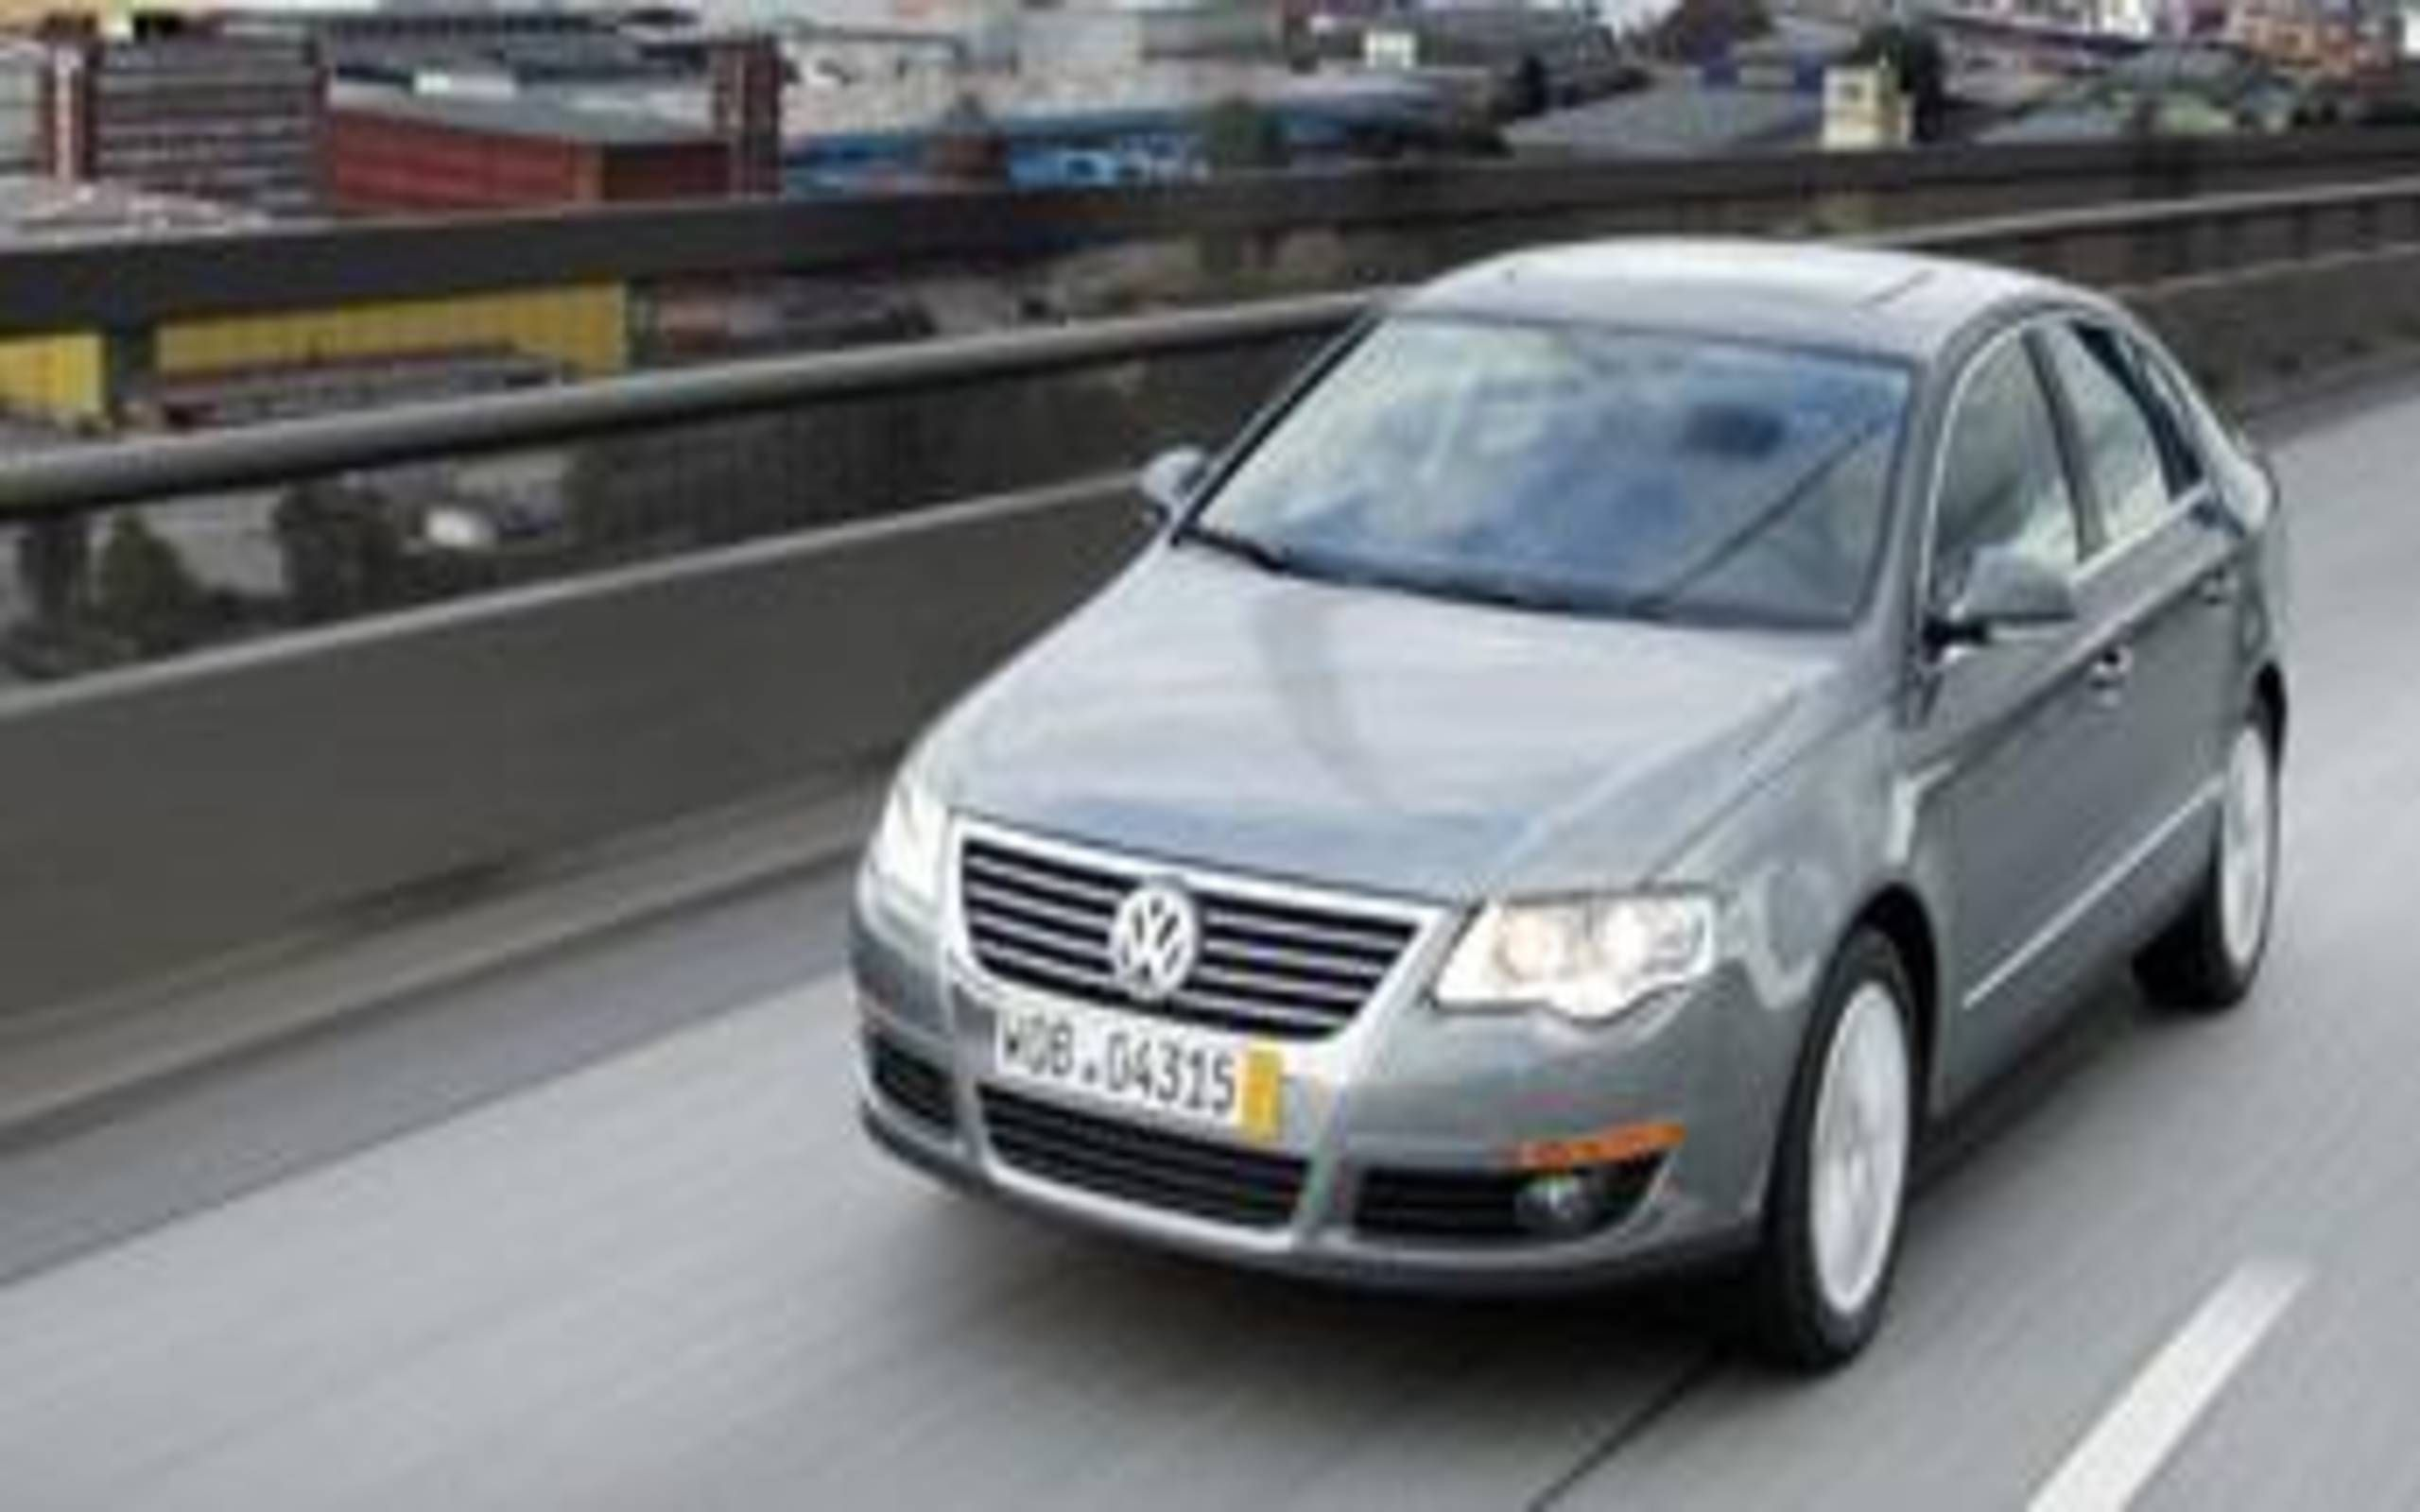 2006 Volkswagen Passat The Sixth Makes Sense Volkswagen Hopes Its Newest Passat Has The Goods To Make A Buck